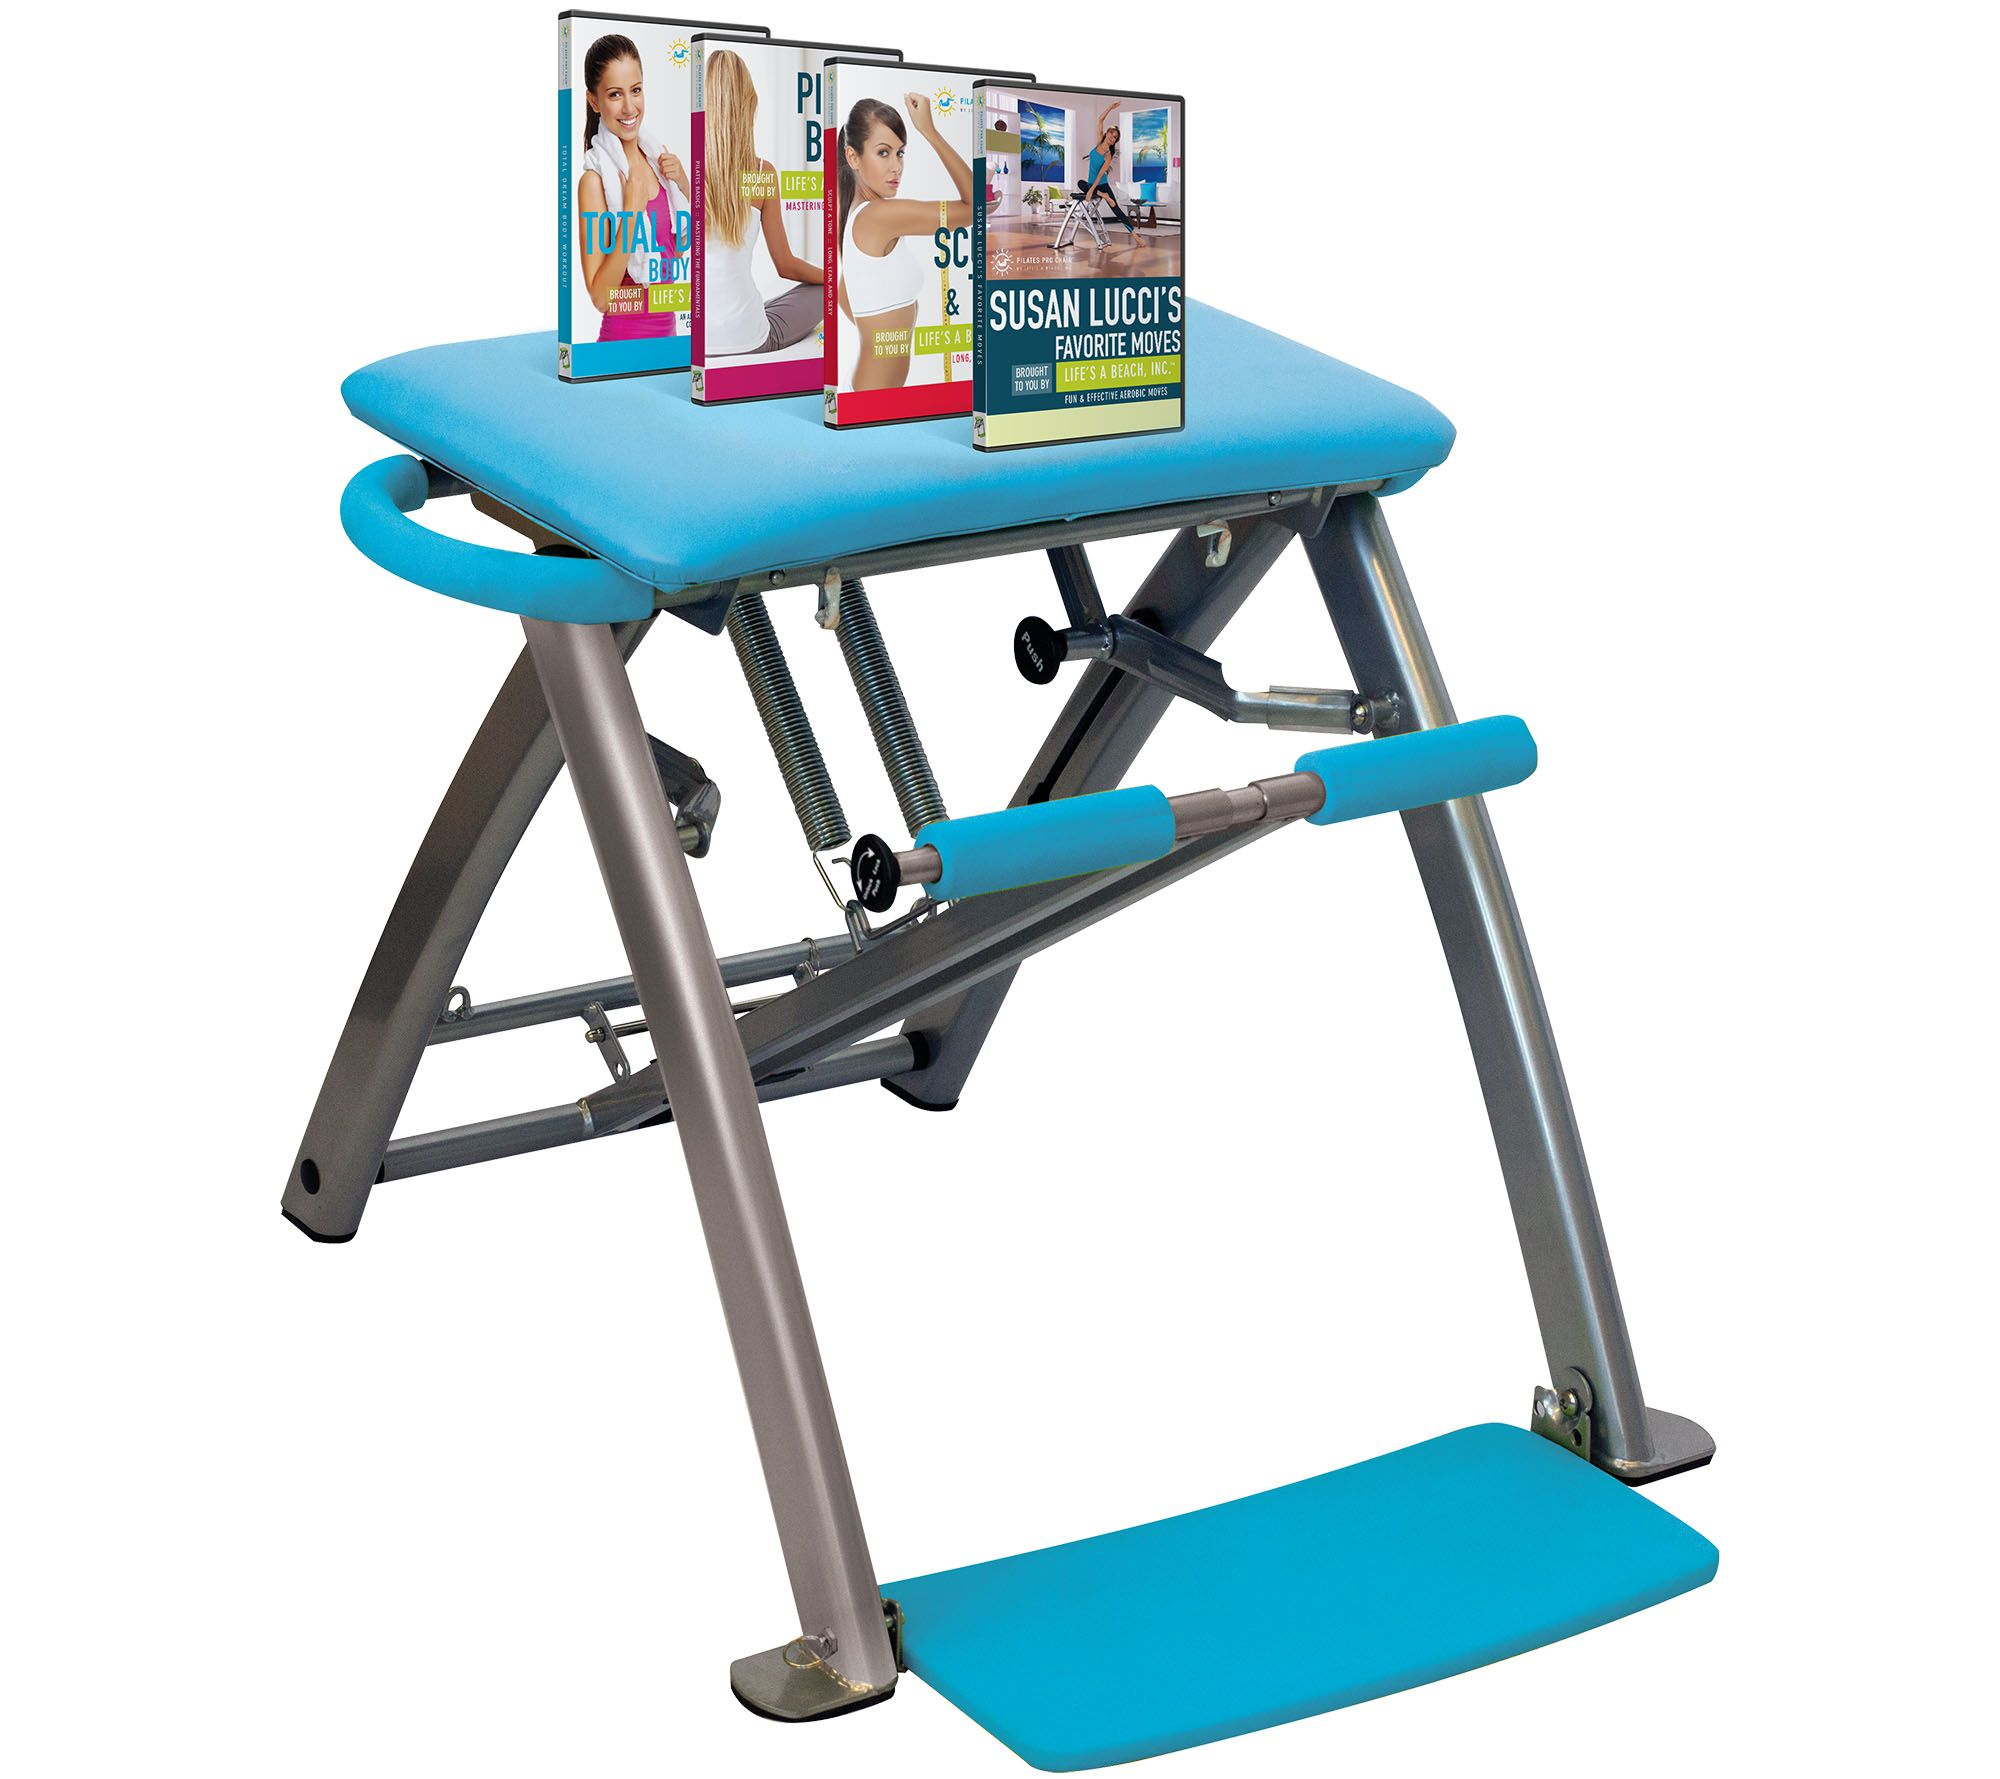 Pilates PRO Chair With 4 DVDs By Lifeu0027s A Beach   Page 1 U2014 QVC.com